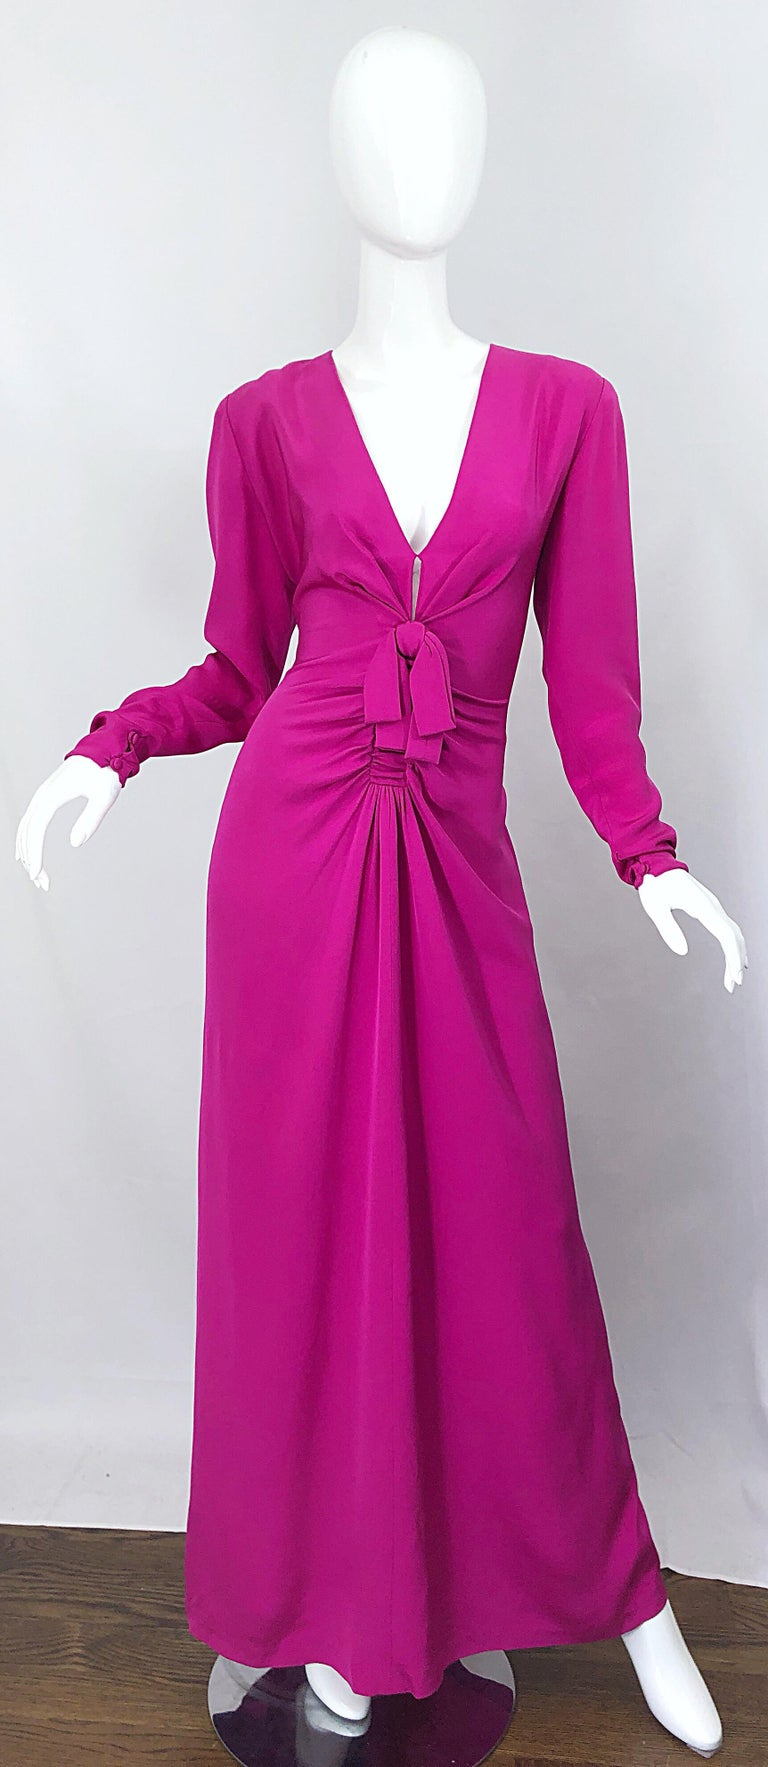 Vintage Bill Blass Size 10 Hot Pink Silk Jersey Cut - Out 1980s 80s Evening Gown For Sale 13